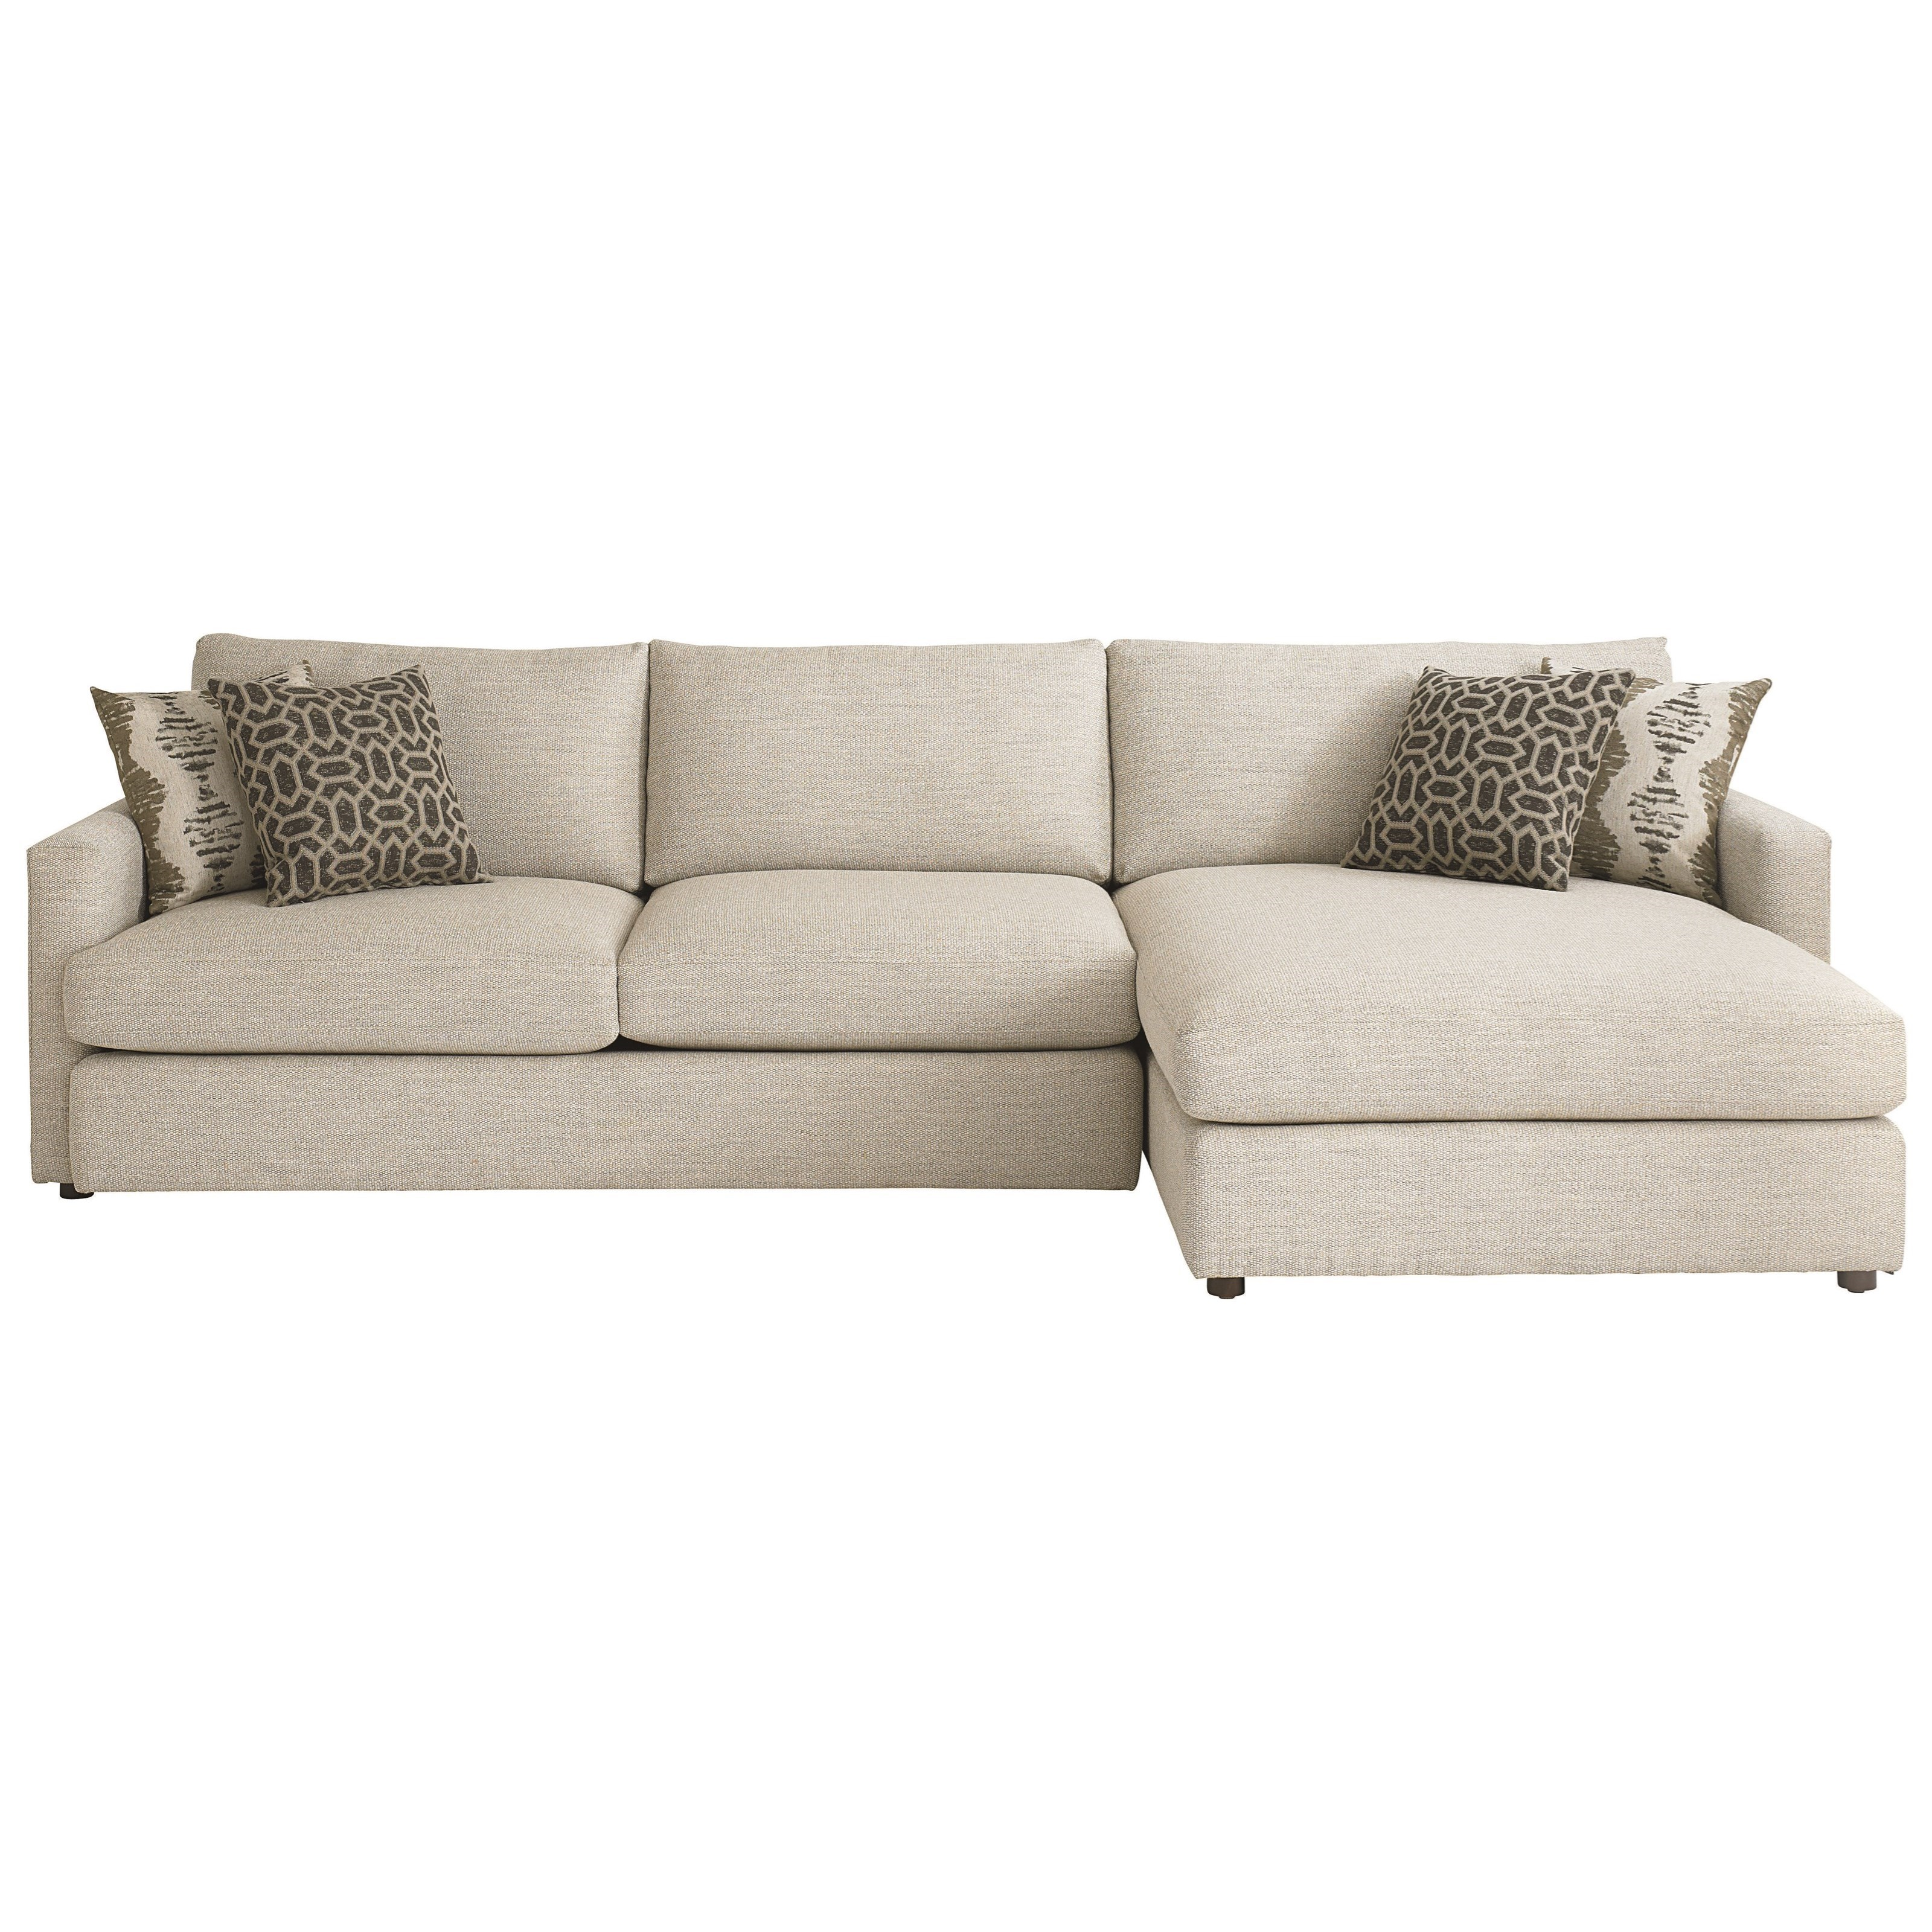 Bassett Allure Sectional with Right Arm Facing Chaise - Item Number 2611-63FC+  sc 1 st  Johnny Janosik : basset sectional - Sectionals, Sofas & Couches